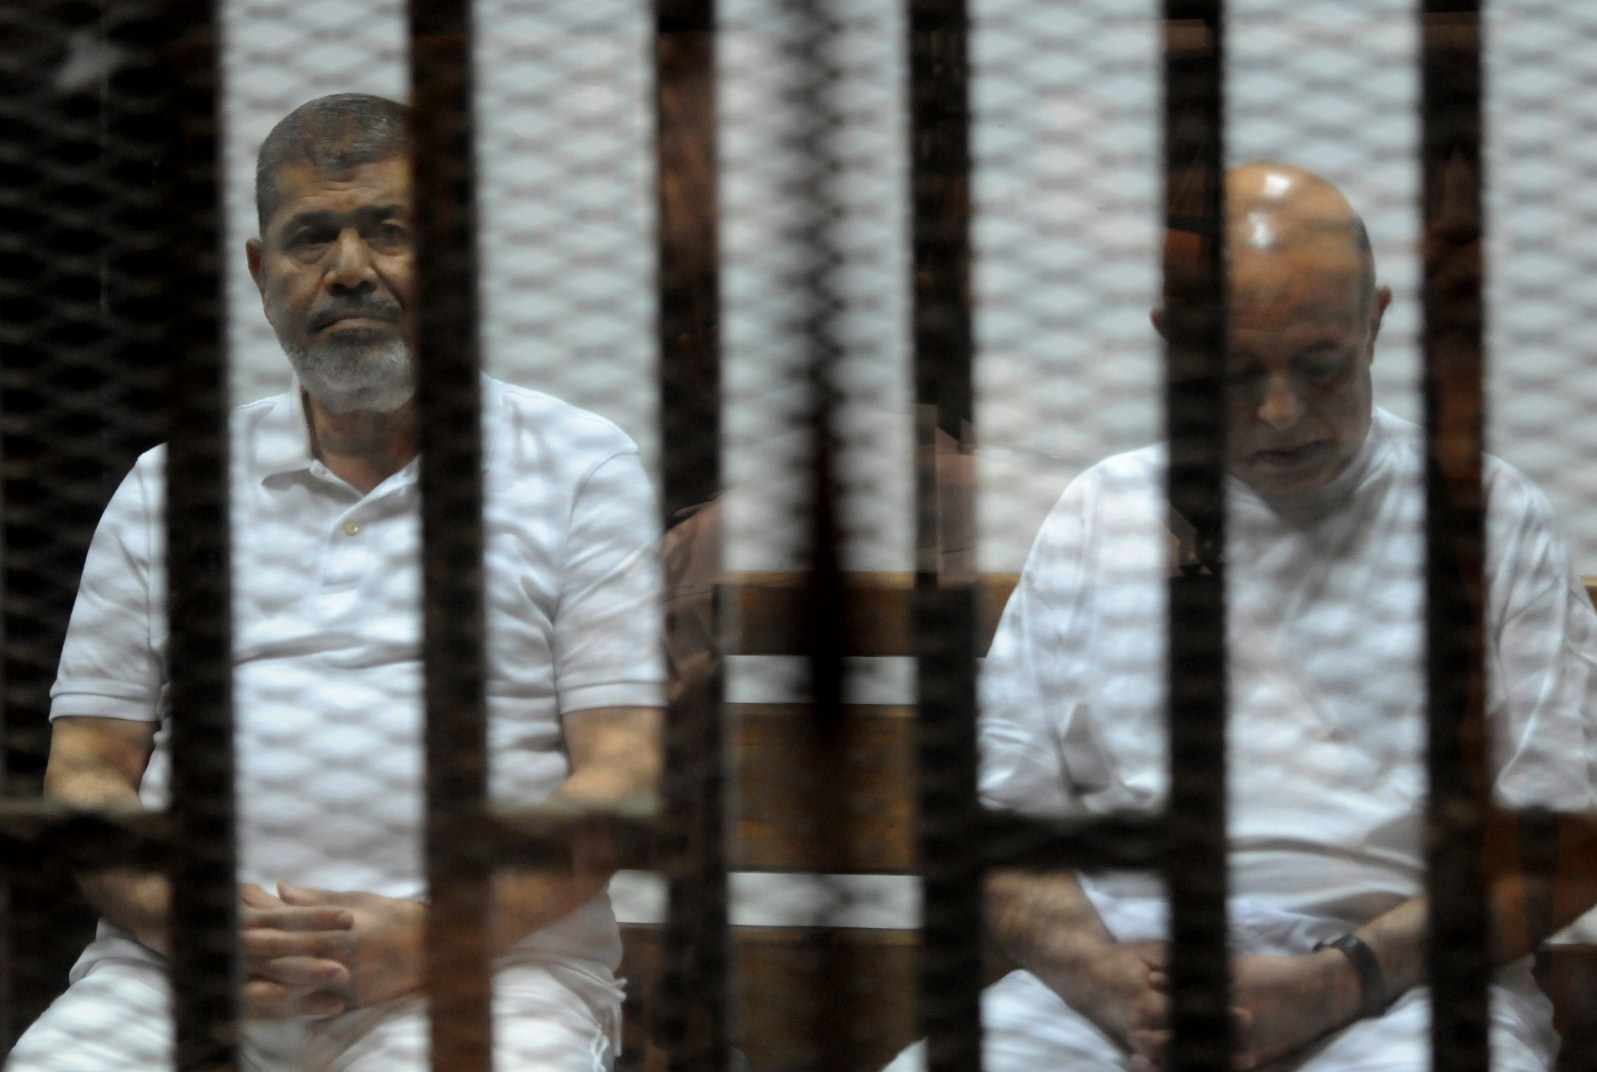 Egypt's deposed Islamist president Mohamed Morsi (L) and former presidential chief of staff Rafaa el-Tahtawi, sit inside the defendants cage during his trial at the police academy in Cairo on October 14, 2014. (STR/AFP/Getty Images)